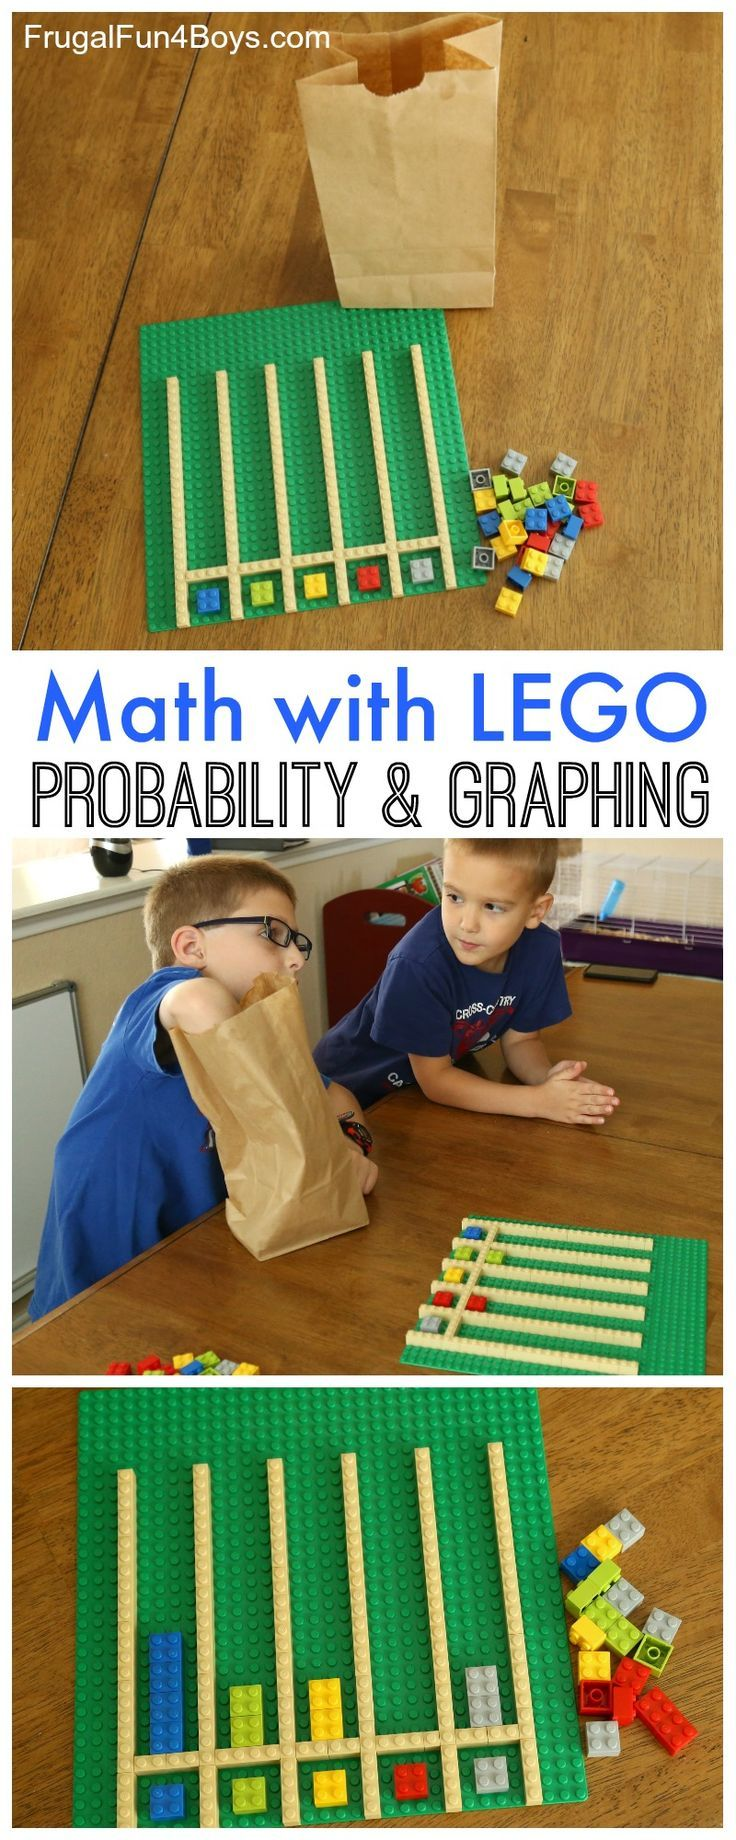 337 best LEGO Activities for Kids images on Pinterest   Lego ...